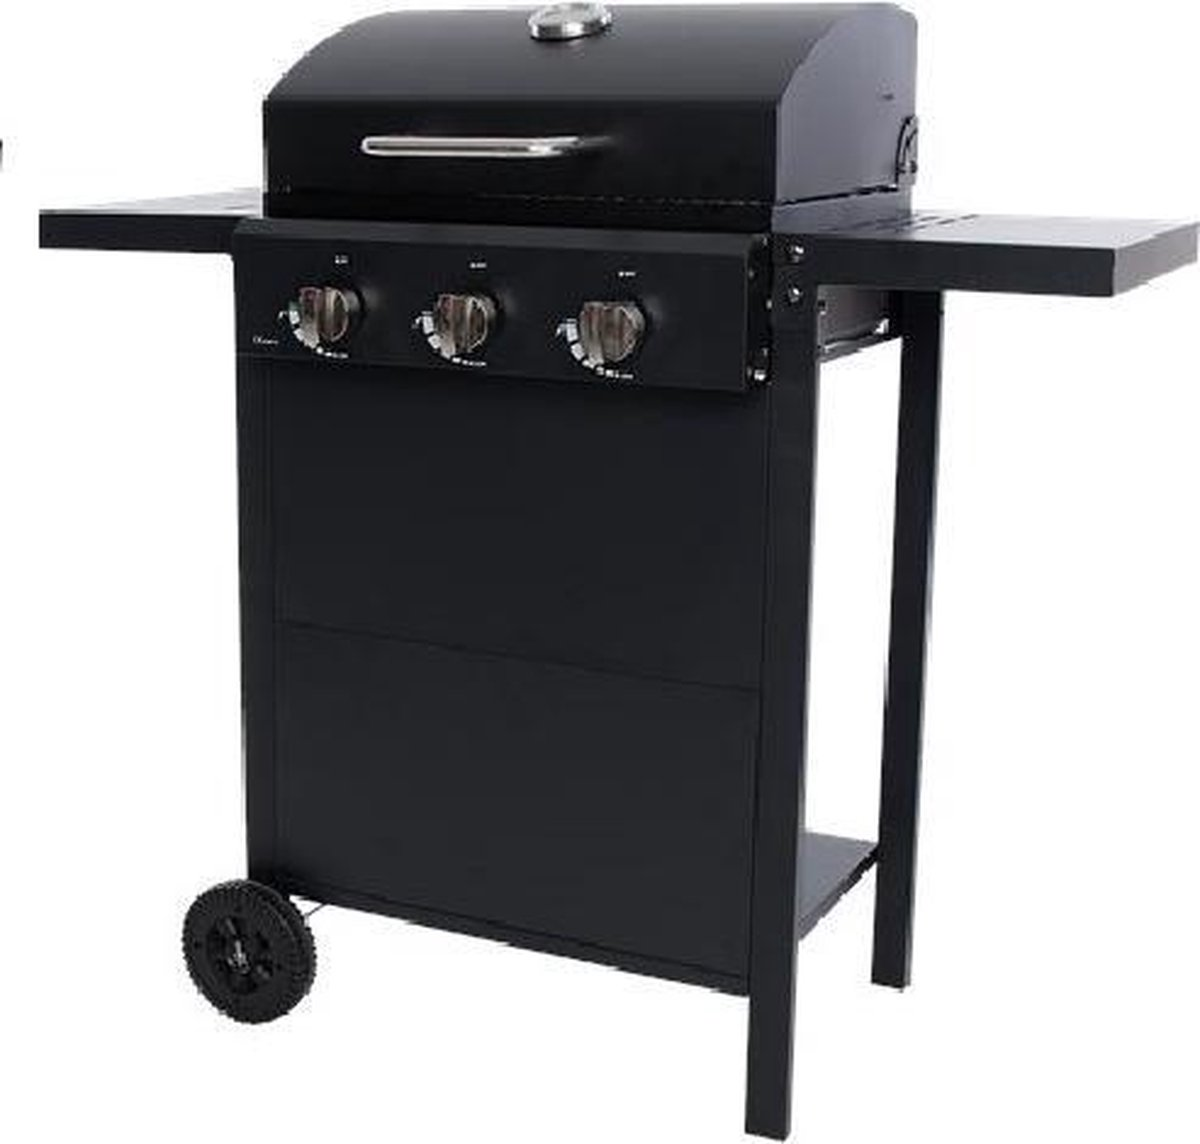 Gasbarbecue -Iowa Gas BBQ- Buitenkeuken - Outside cooking possibility -